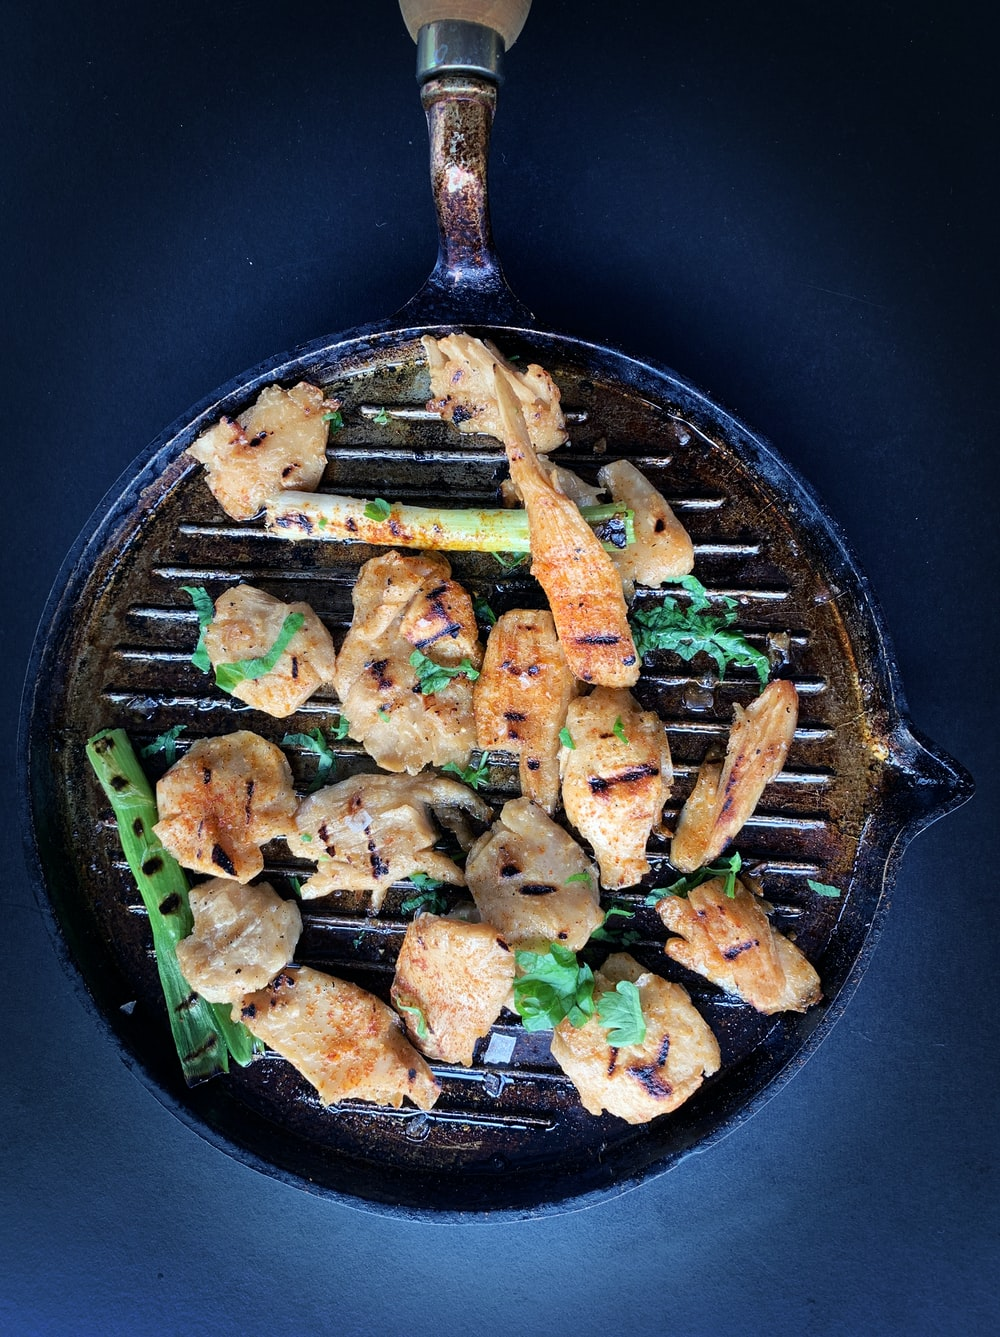 fried meat with green vegetable on black pan